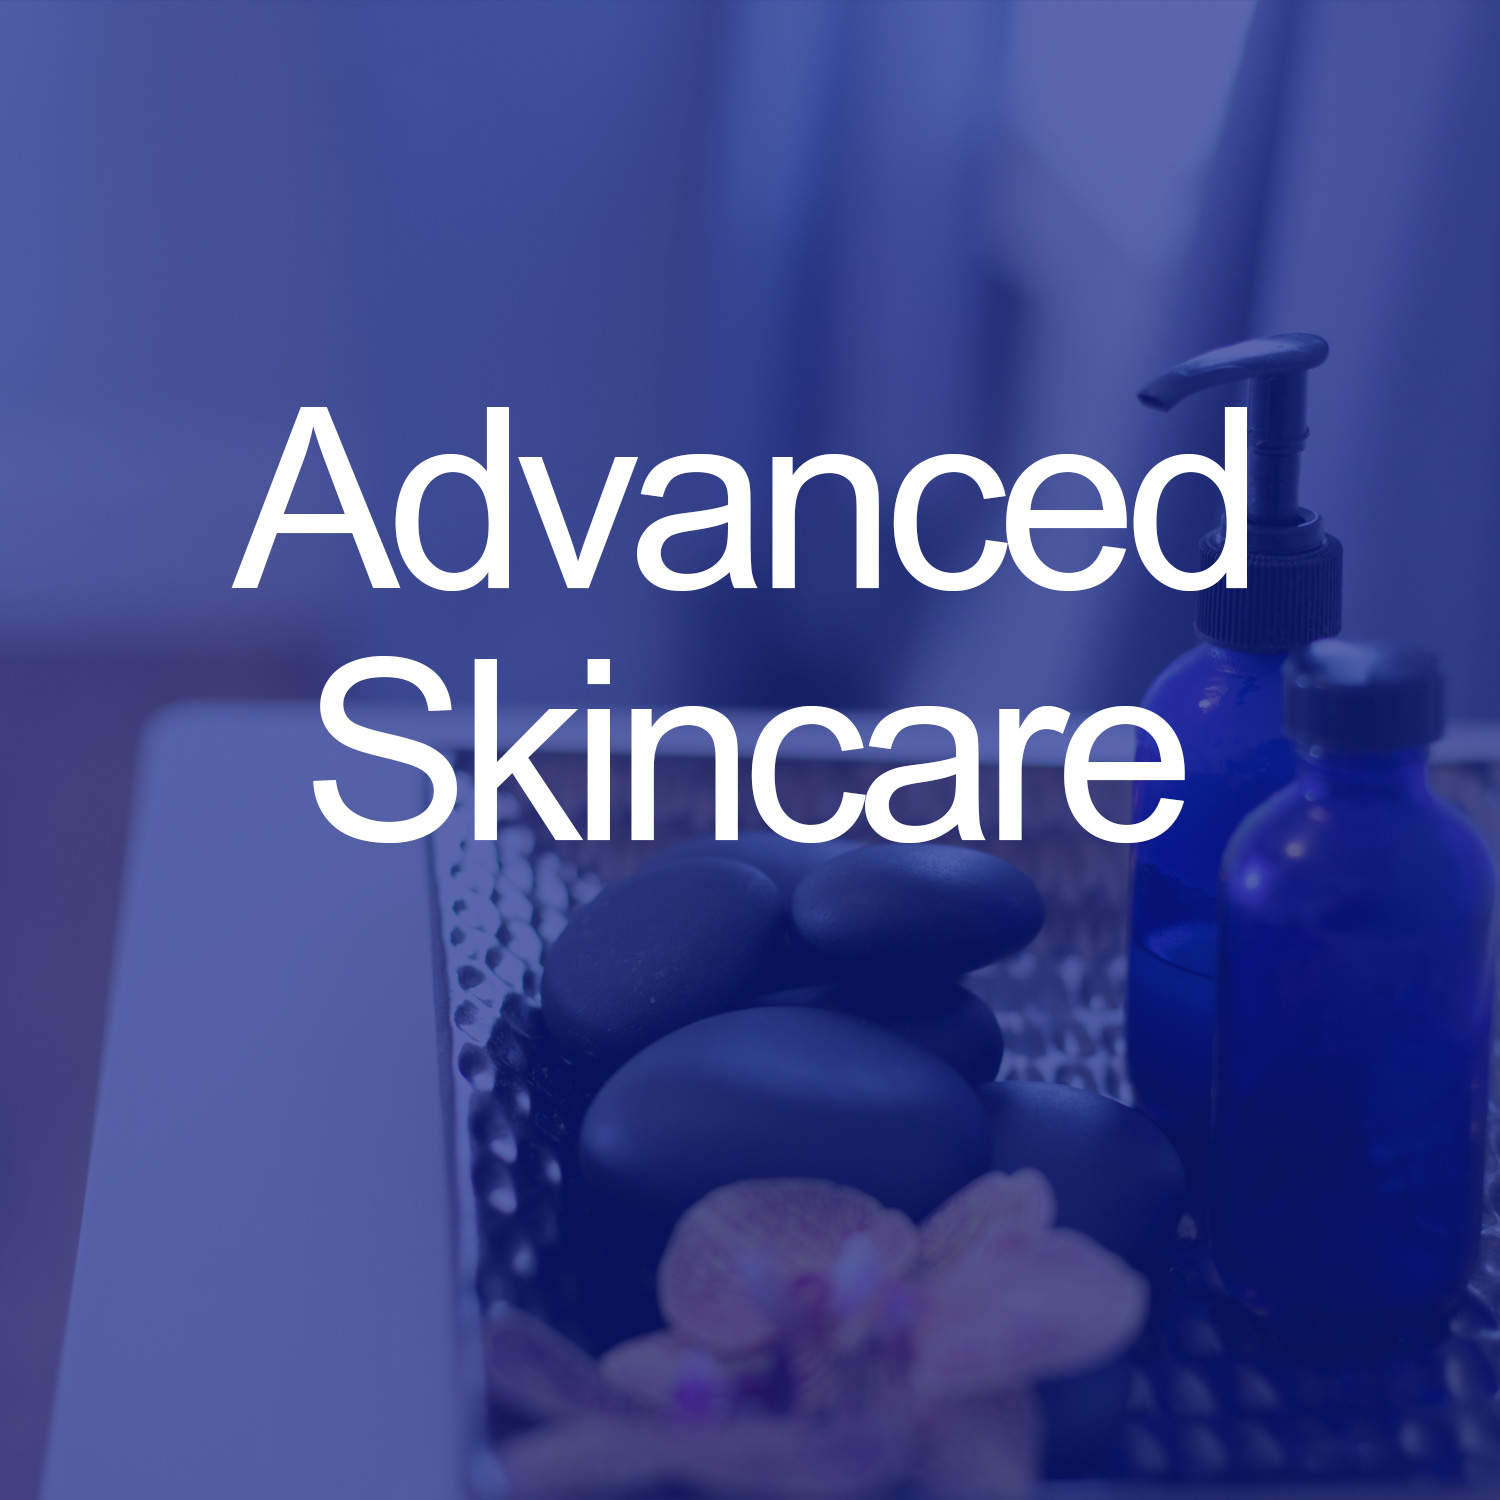 advanced skincare